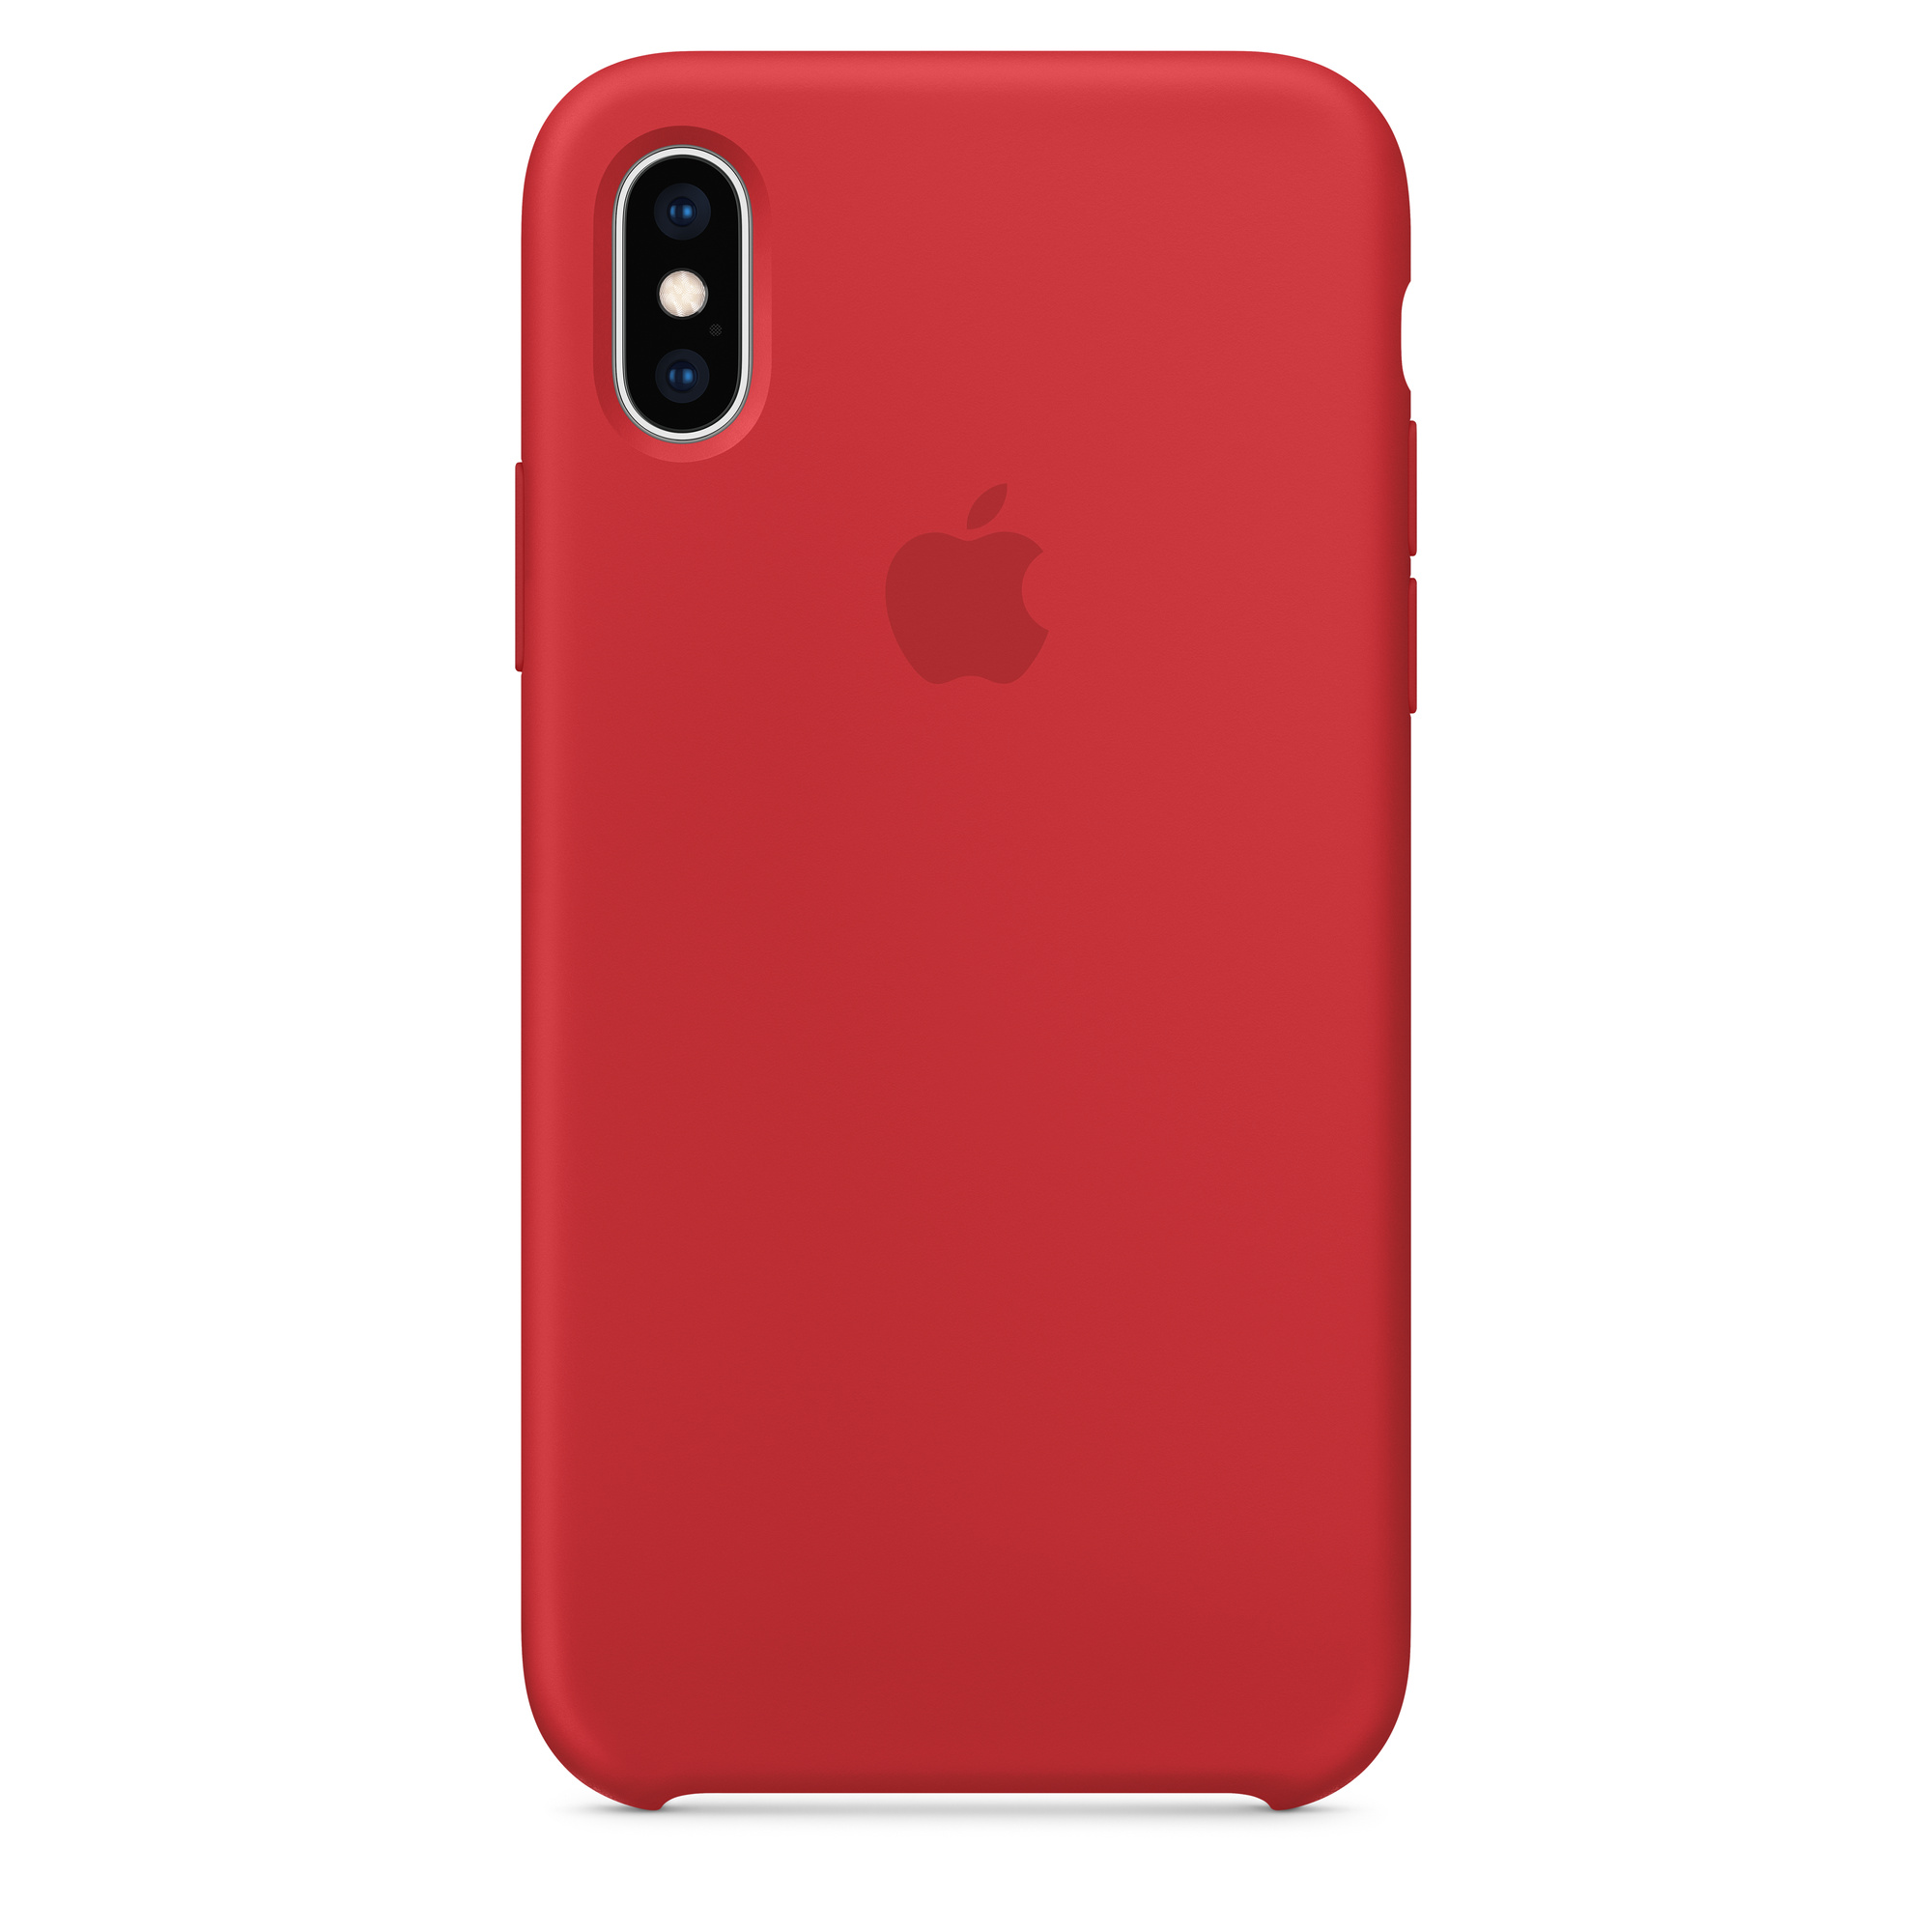 finest selection 11607 30b0f iPhone XS Silicone Case - (PRODUCT)RED